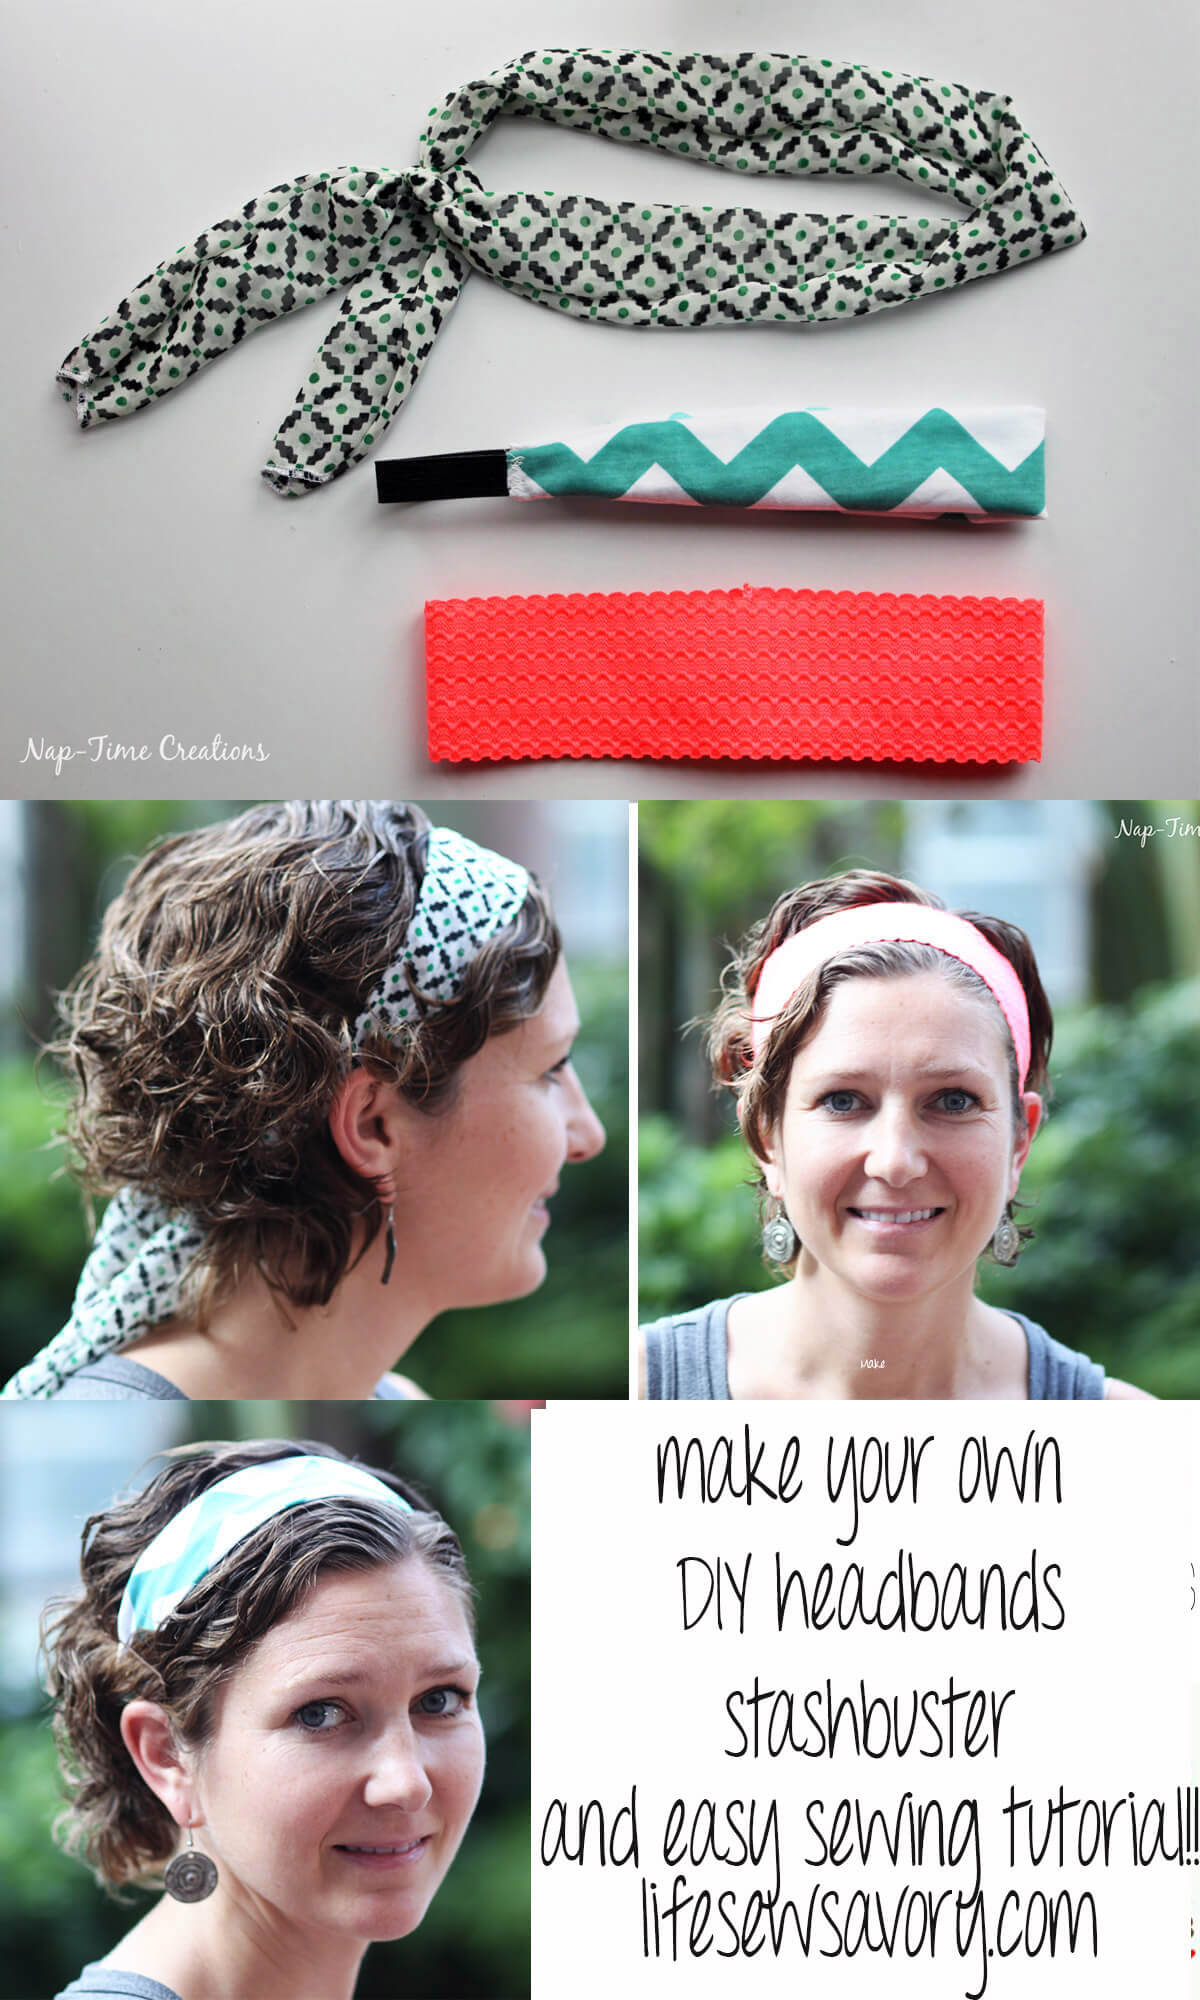 easy headbands DIY simple sewing tutorial and stashbuster from Life Sew Savory